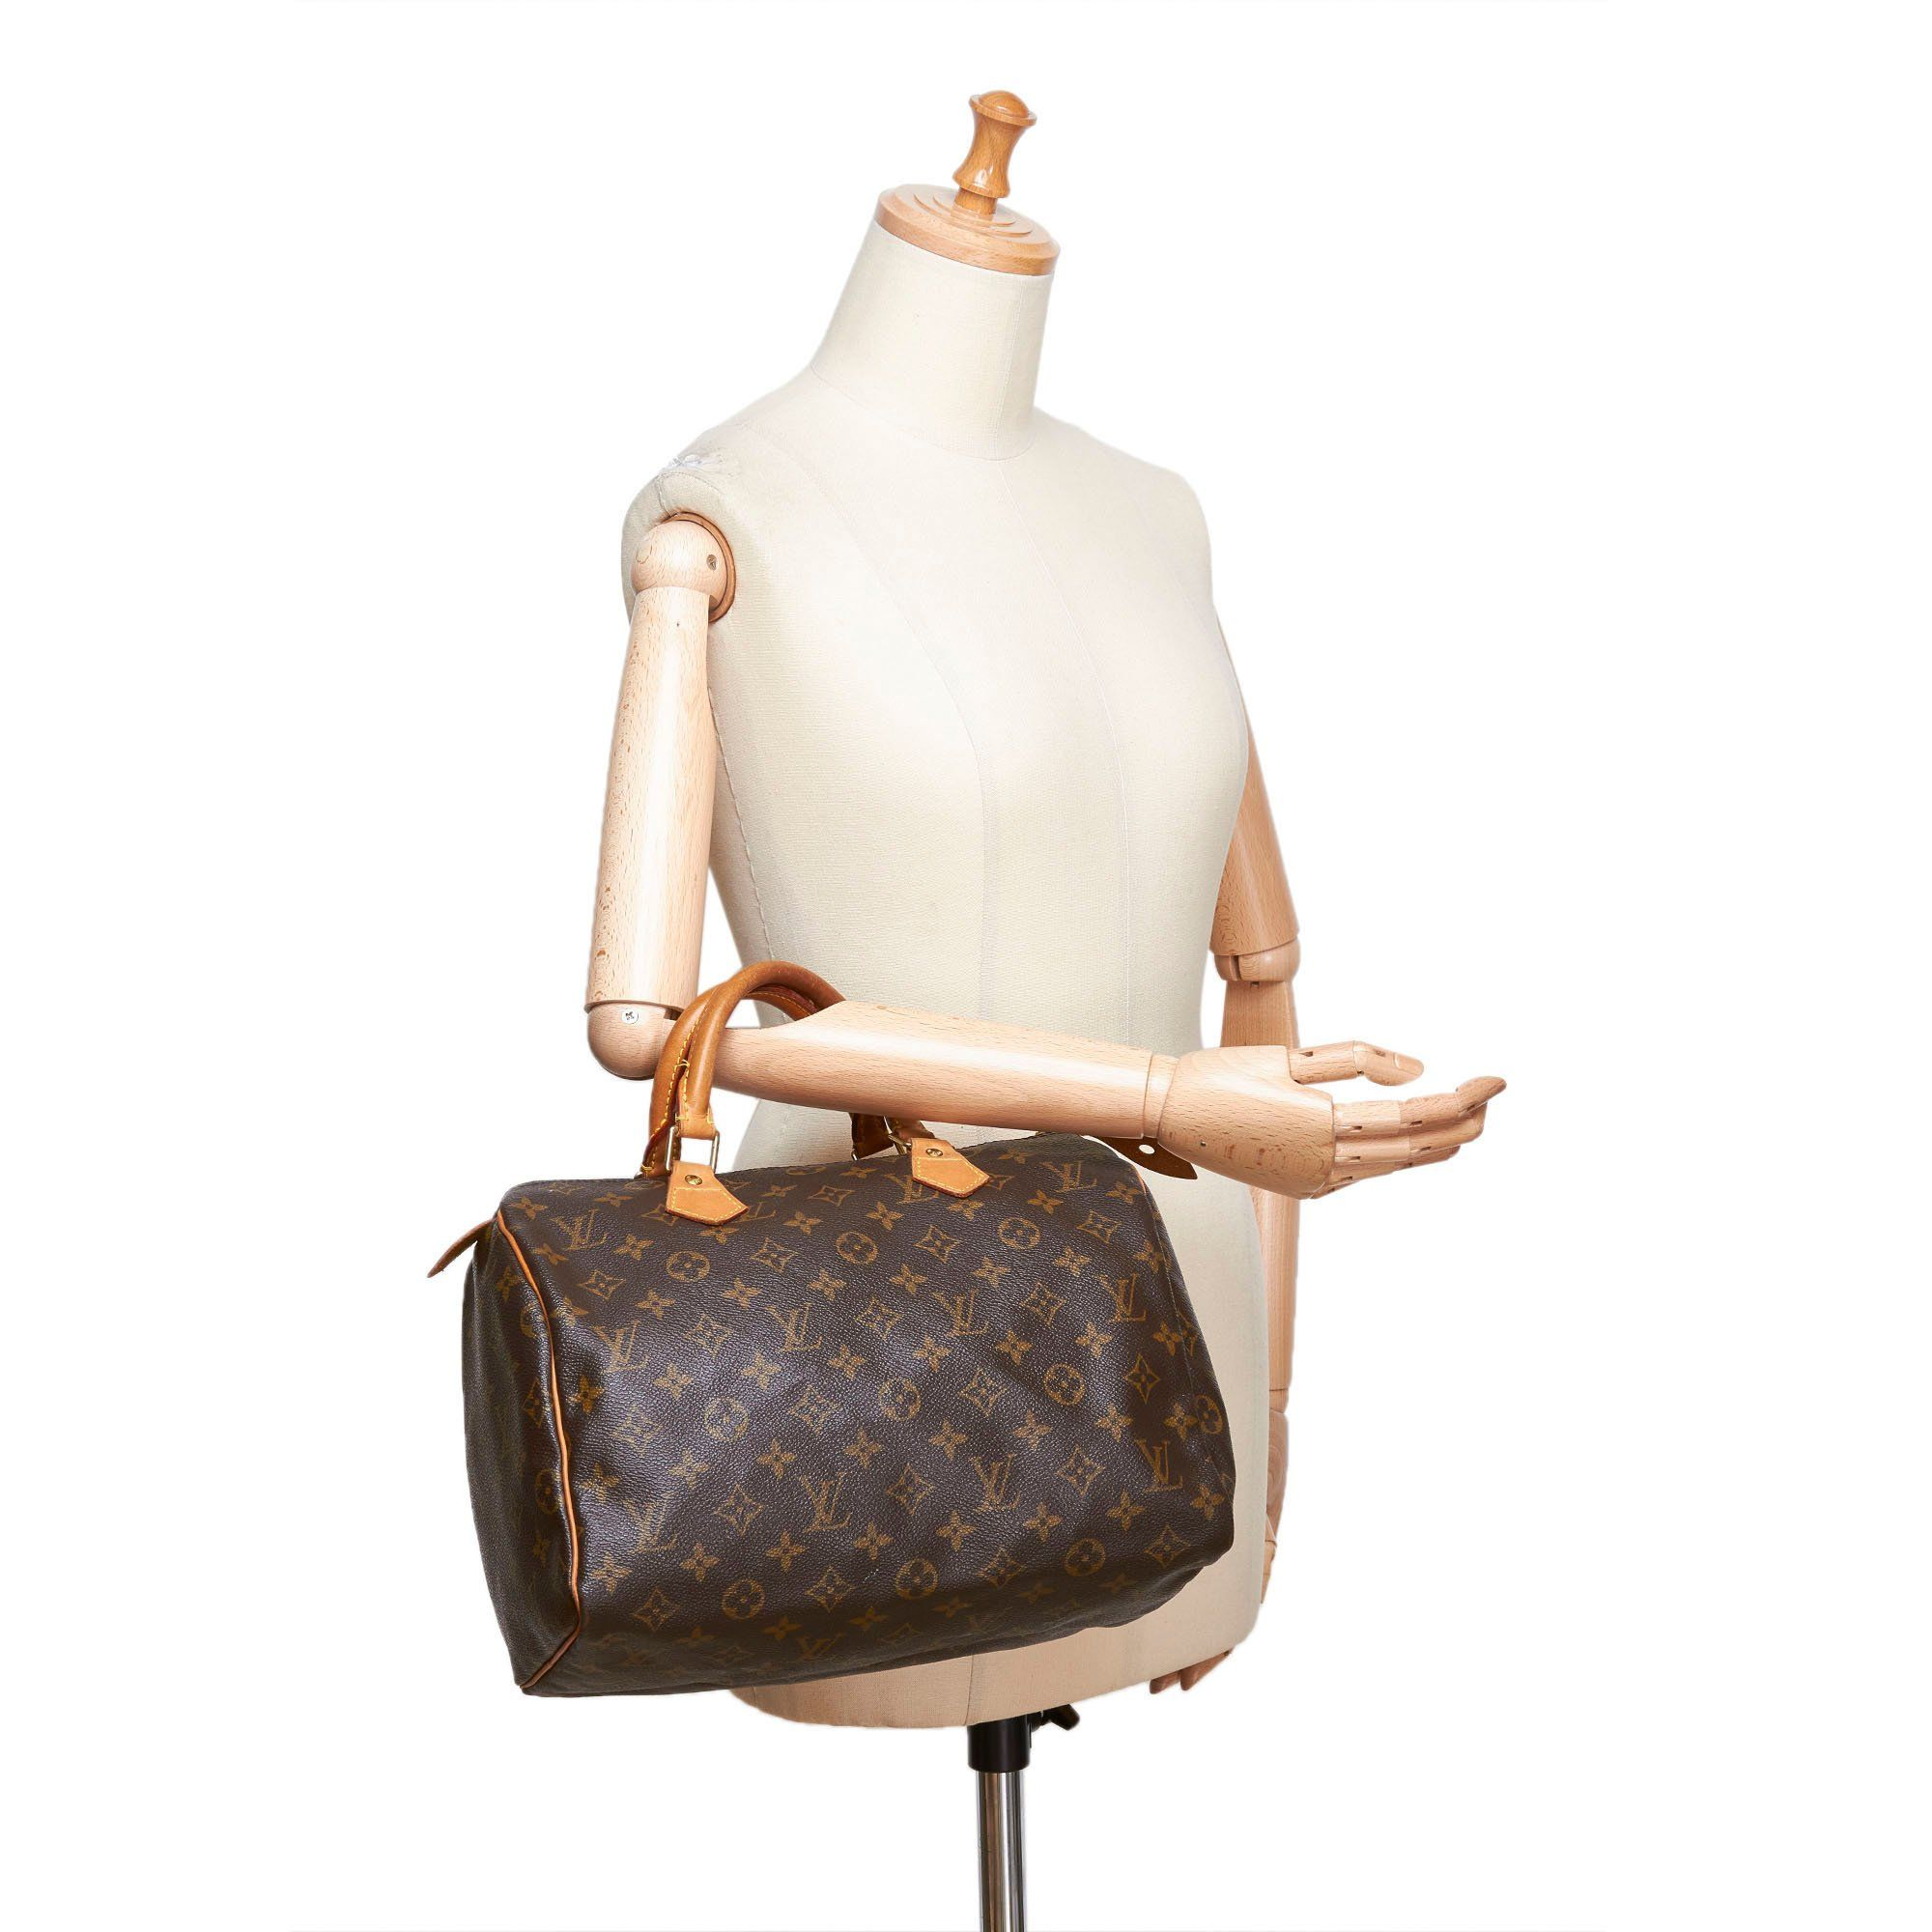 6290af2dc68d8e Gucci Leather Bamboo Medium Blue Tote Bag | LAB Consignment Merchandise |  Pinterest | Tote bag, Gucci and Leather